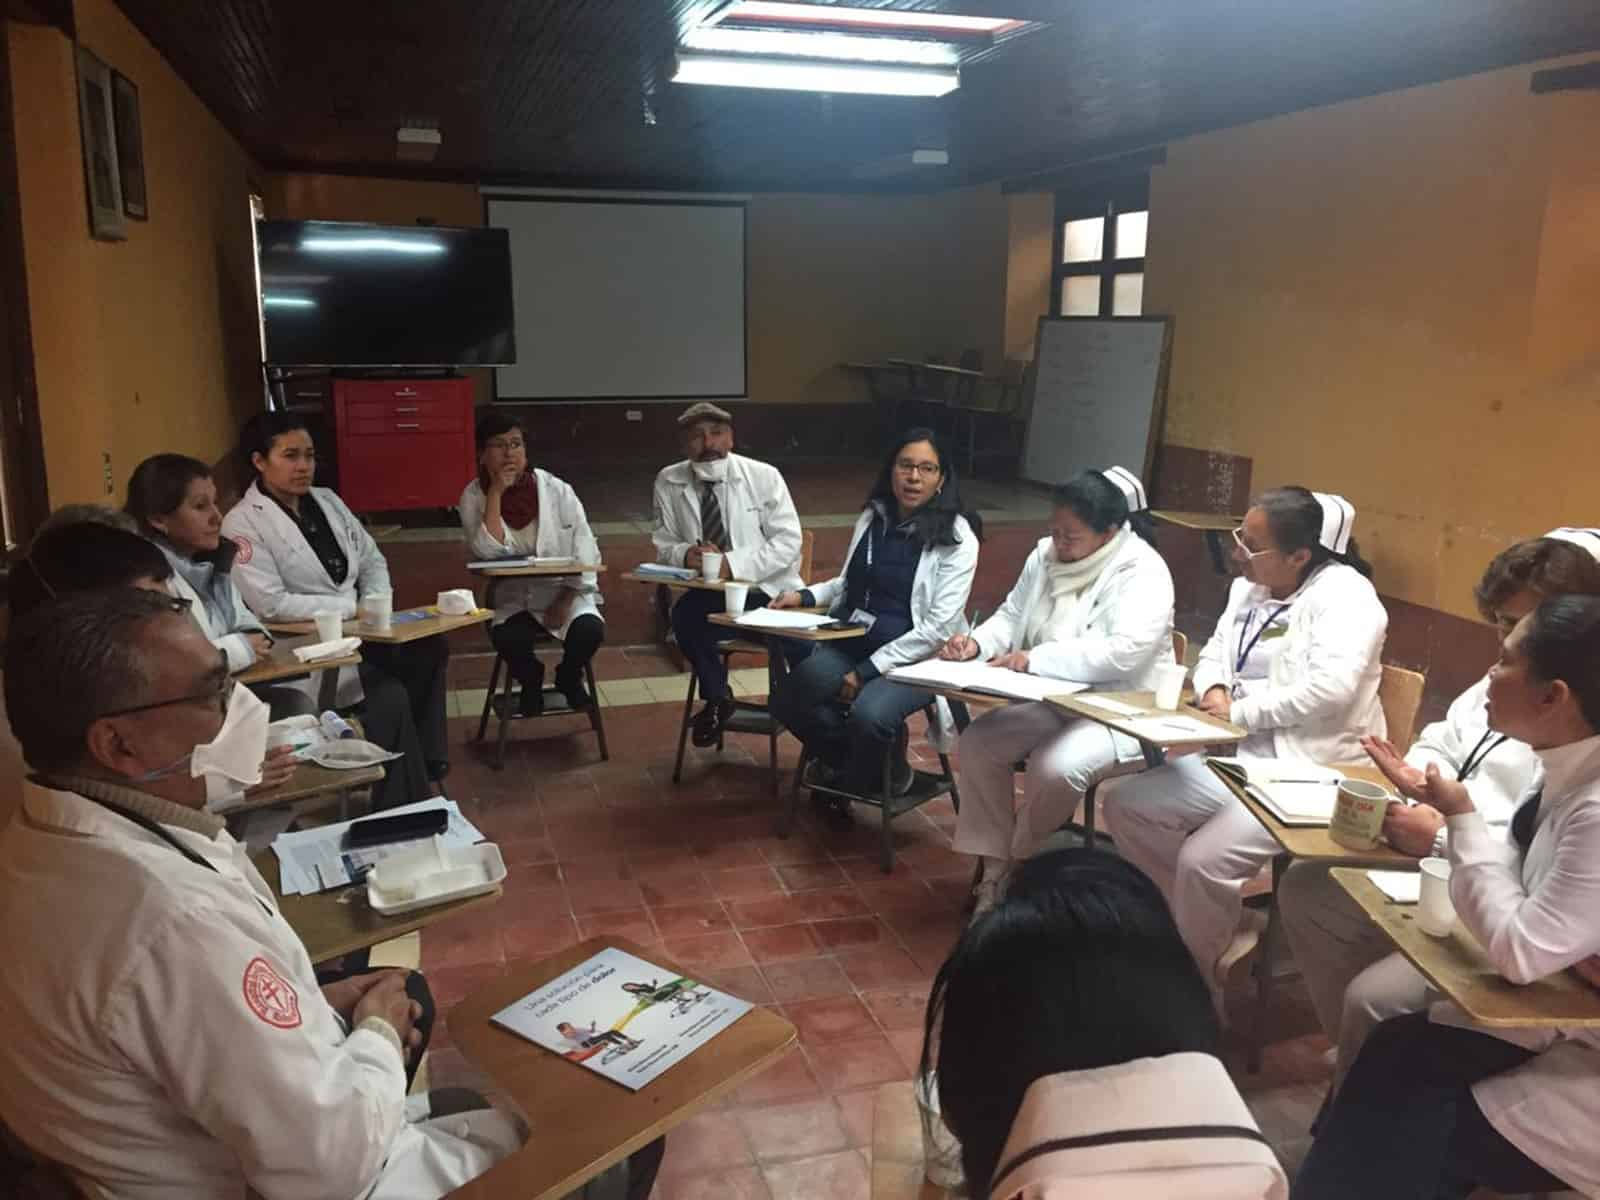 Doctors sitting at desks in a circle talking